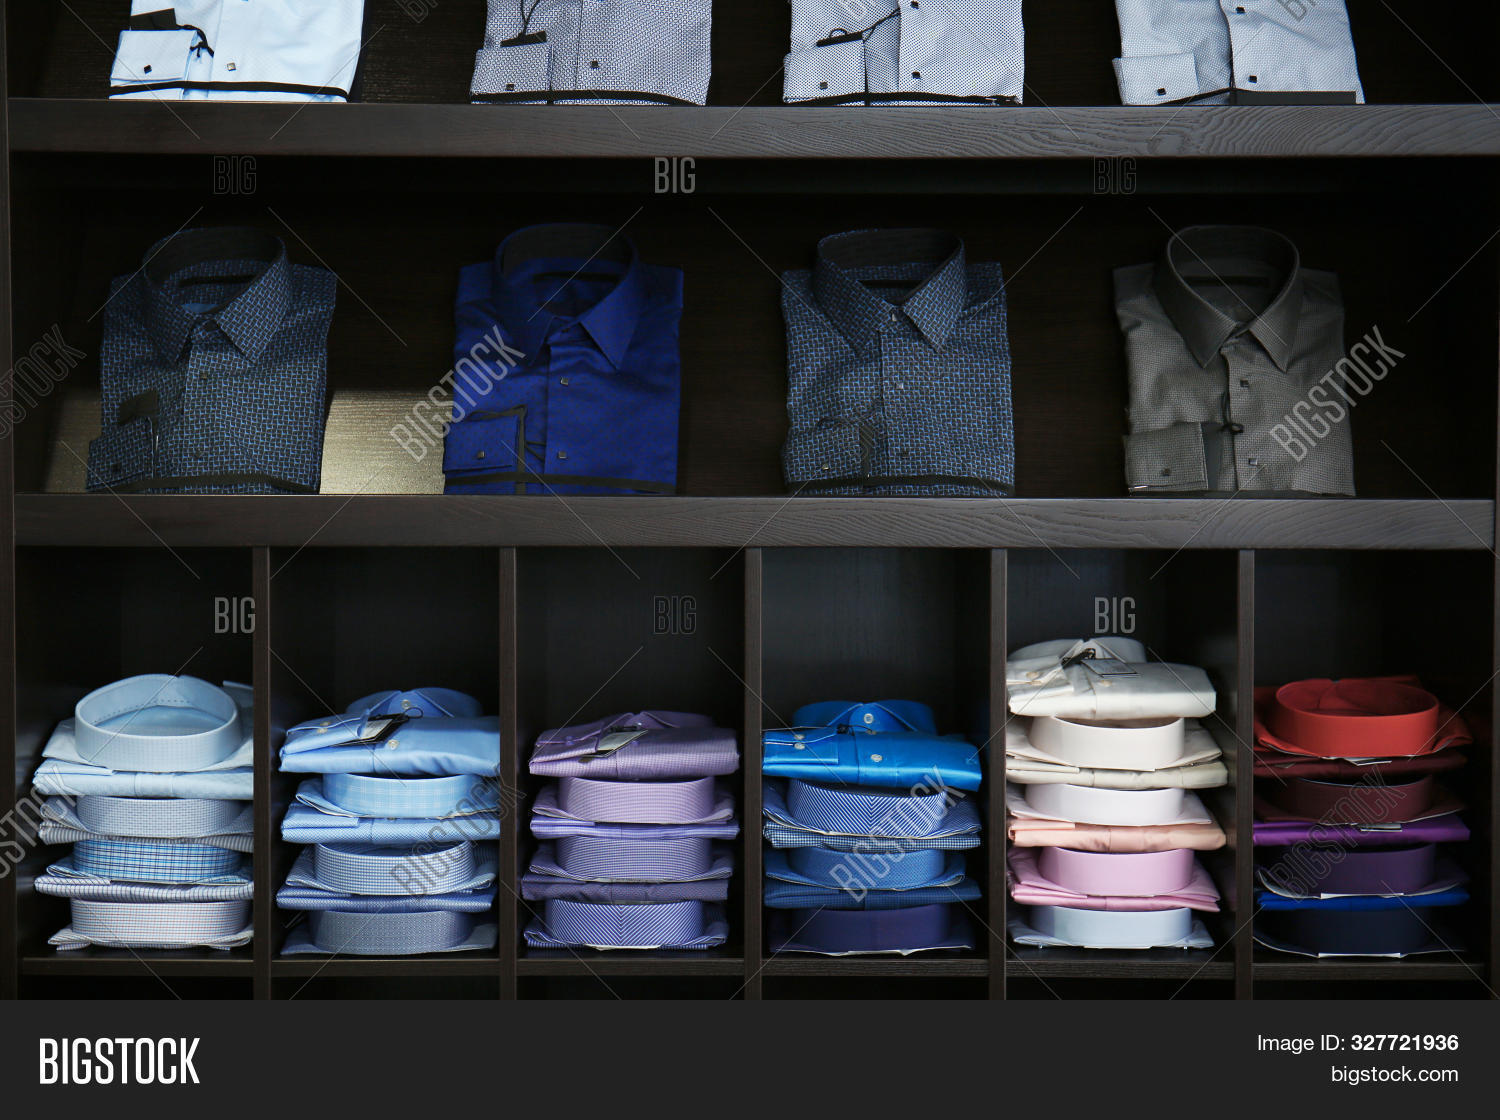 assortment,background,business,buy,choice,classic,clothes,collection,design,different,elegant,fabric,fashion,folded,formal,garment,glamour,indoors,lifestyle,luxury,male,many,men,menswear,model,modern,new,outfit,purchase,retail,sale,sell,shelf,shirts,shop,shopping,store,style,stylish,tailor,textile,trend,trendy,variety,wear